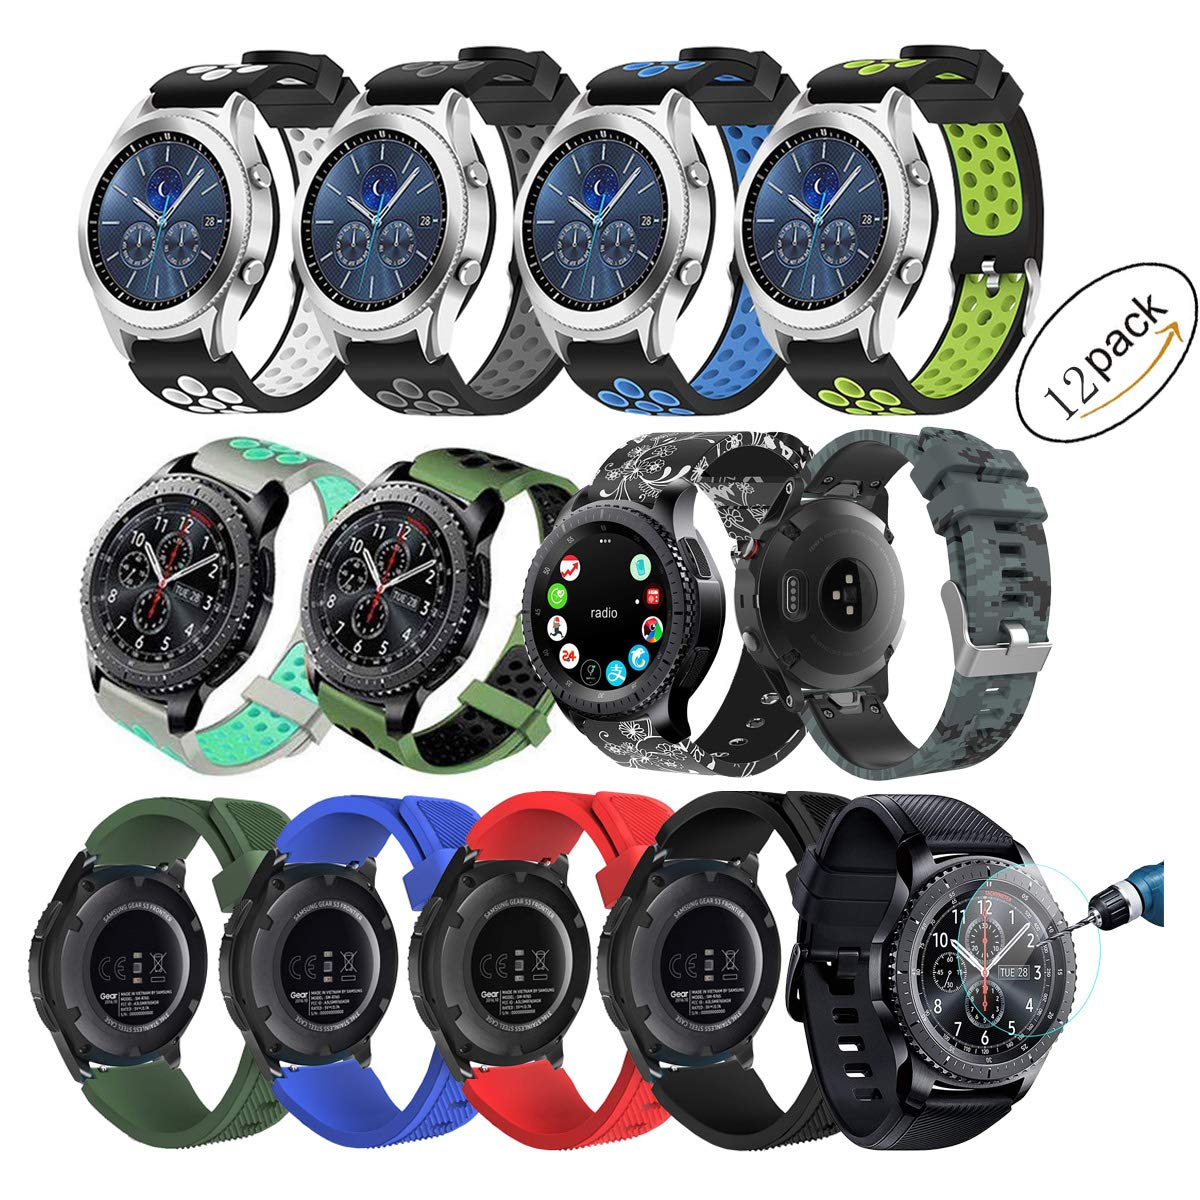 Compatible for Samsung Gear S3 Frontier/Classic Watch Bands 22mm Solid Stainless Steel Metal Business Replacement Silicon Bands Samsung Gear S3 ...